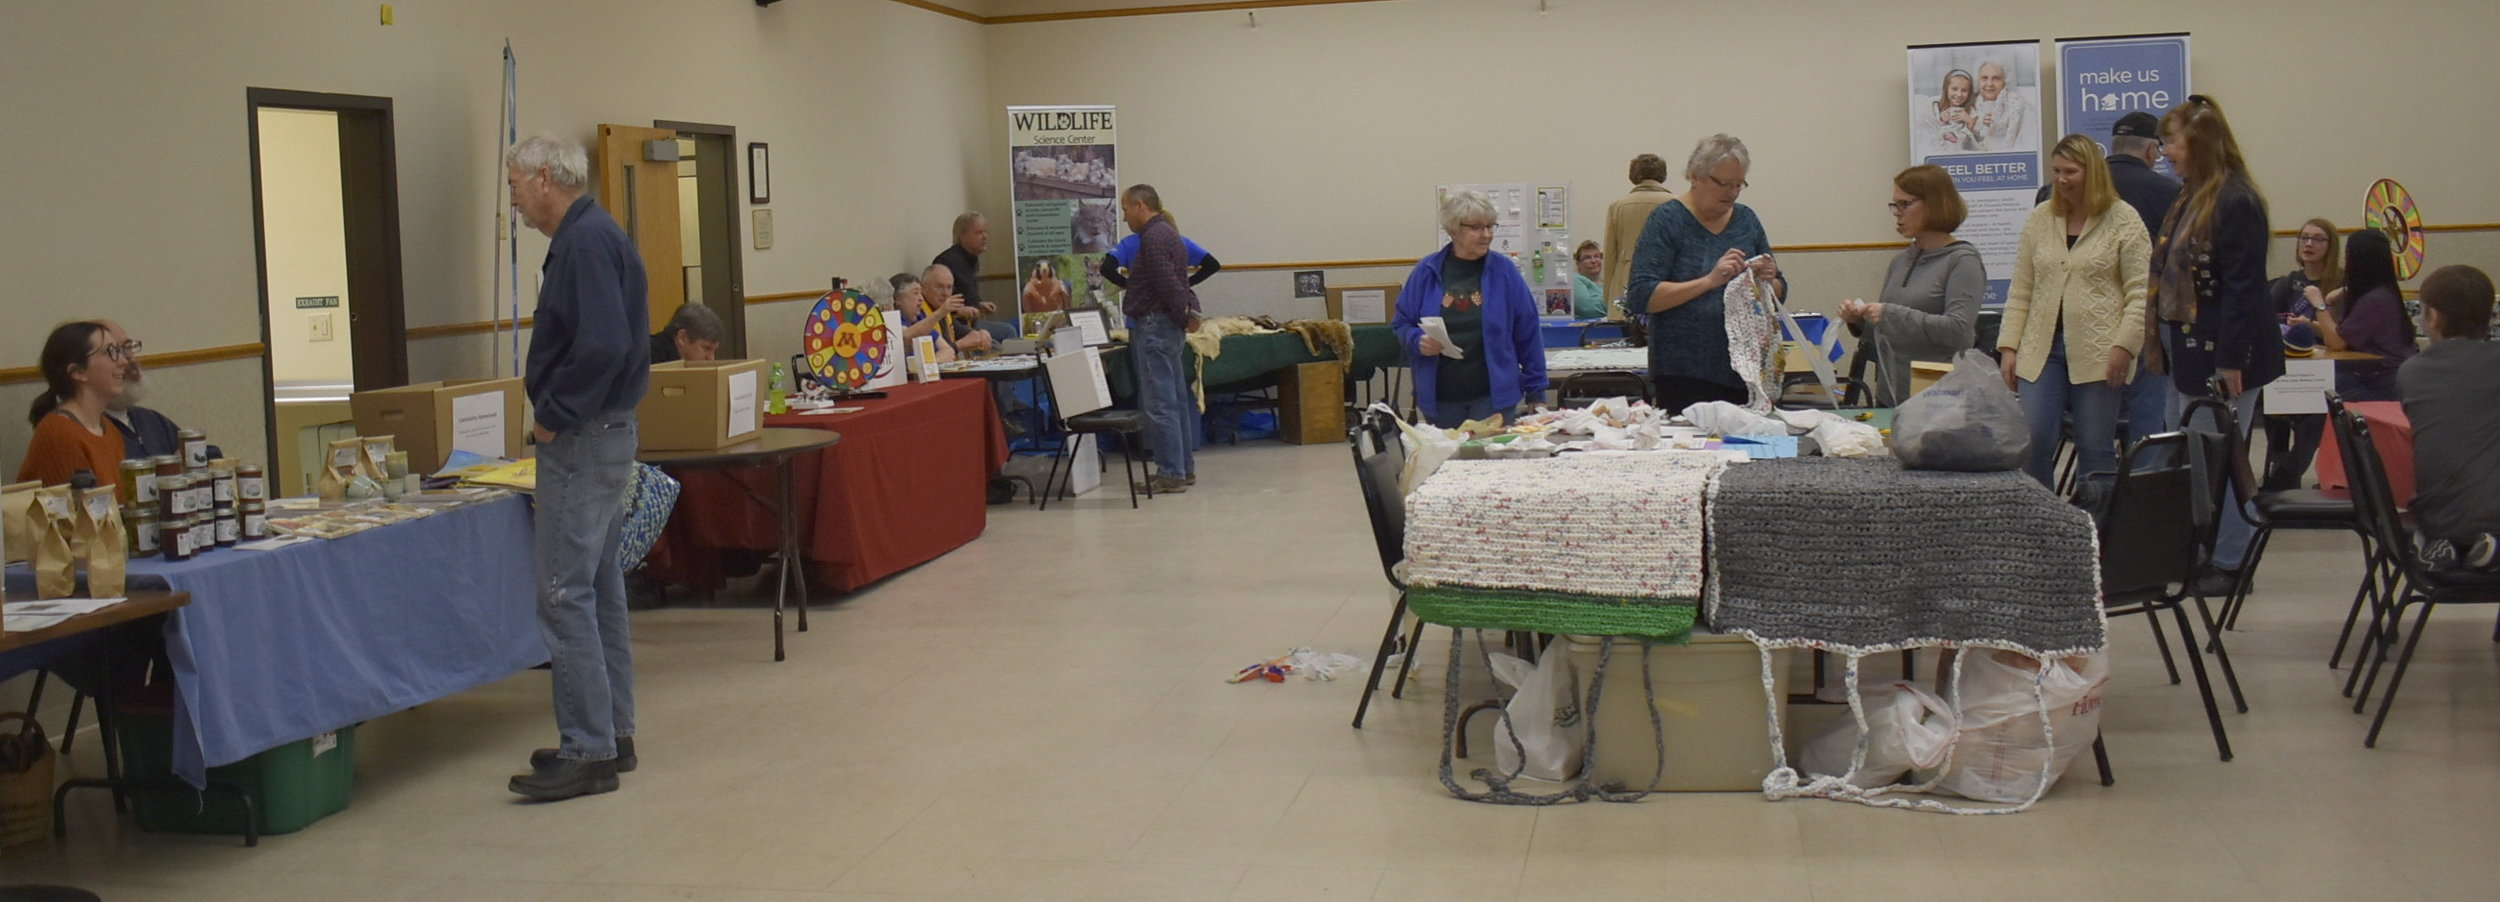 A variety of non-profits were at the One Stop Donation Drop including those pictured here: Community Homestead, Lions Gift of Sight, Scandia-Marine Lions Club, Wildlife Science Center, Minnesota Lions Diabetes Foundation, Christ Lutheran Church, and Osceola Medical Center. People could learn how to make plarn (plastic yarn) from plastic bags and use that to help crochet mats for those experiencing homelessness. The table behind the mats had fleece-tied blankets that were made for children and teens experiencing life-threatening health issues. There were additional organizations and activities at the event that aren't pictured here.